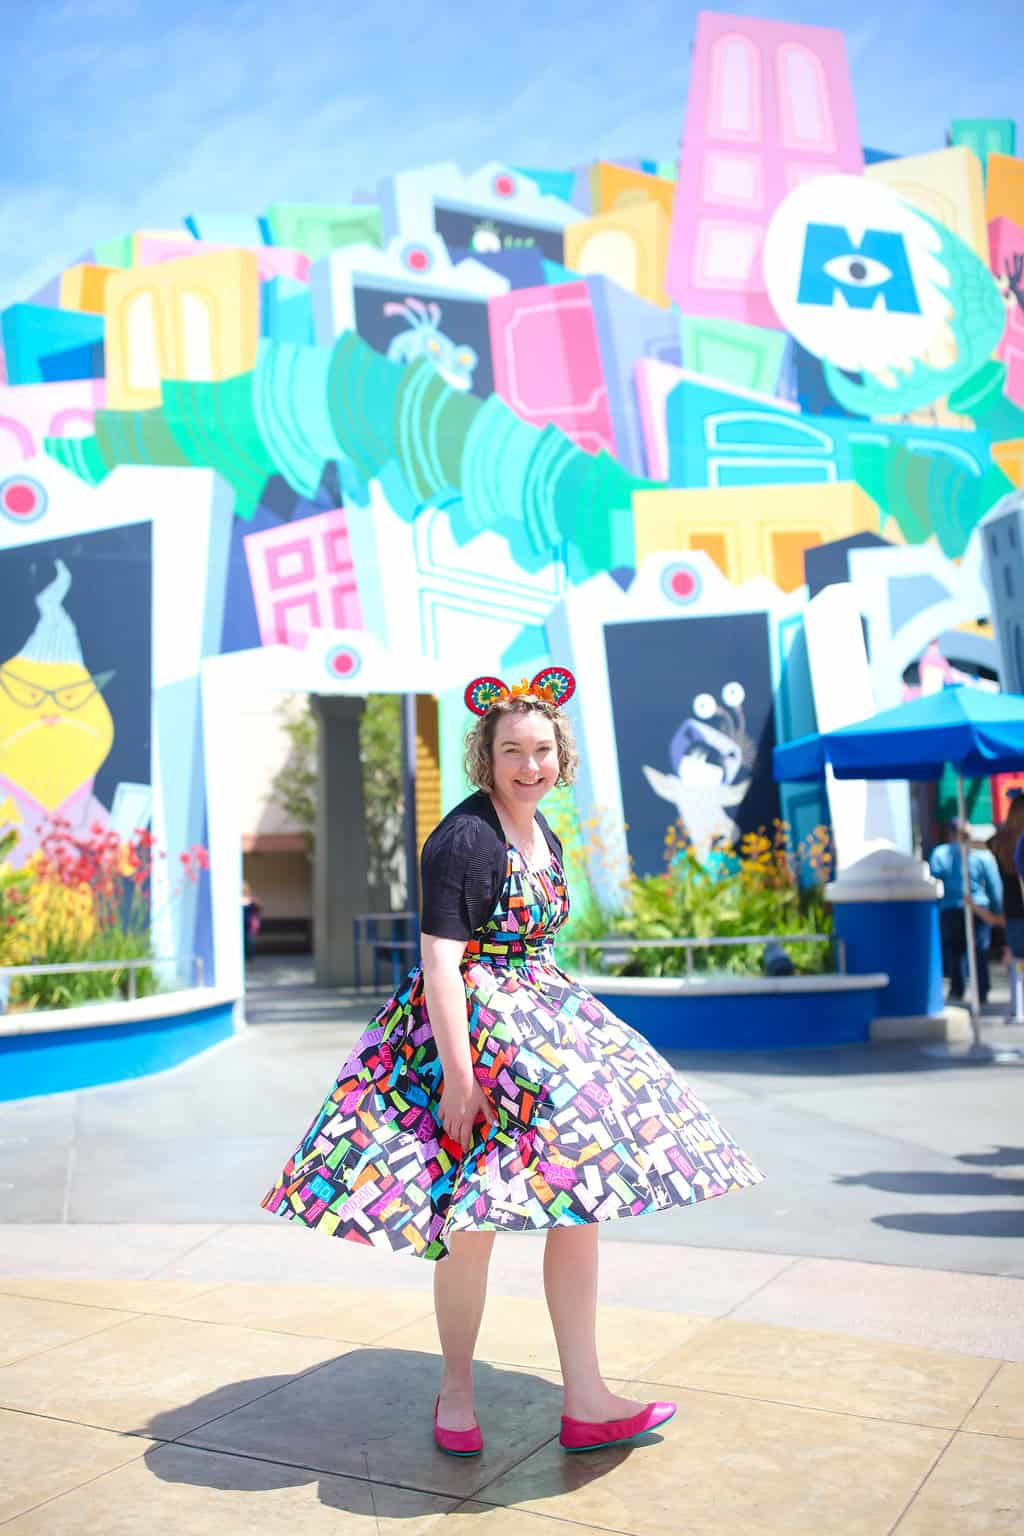 With the opening of Pixar Pier in June and the start of Pixar Fest in April, it's going to be one gigantic, intergalactic, BFF party filled with laughter and fun at Disneyland Resort and Disney California Adventure. Here's what you should wear! #disneybounding #disneyland #pixarfest #disneyoutfit #disneyideas #pixar #monstersinc via @simplifyingfamily